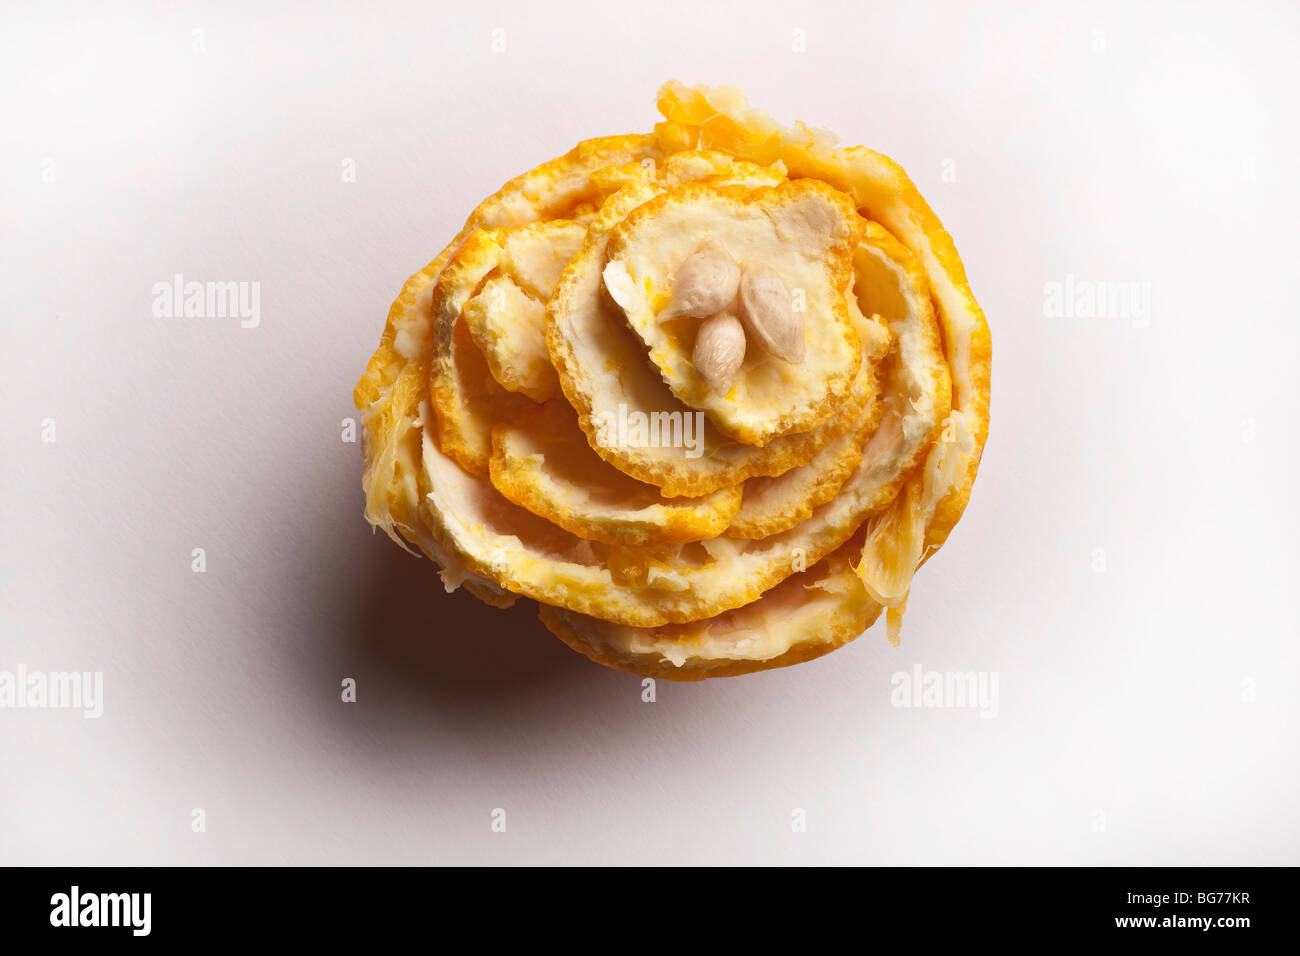 Orange peel and pips arranged in floral design - Stock Image